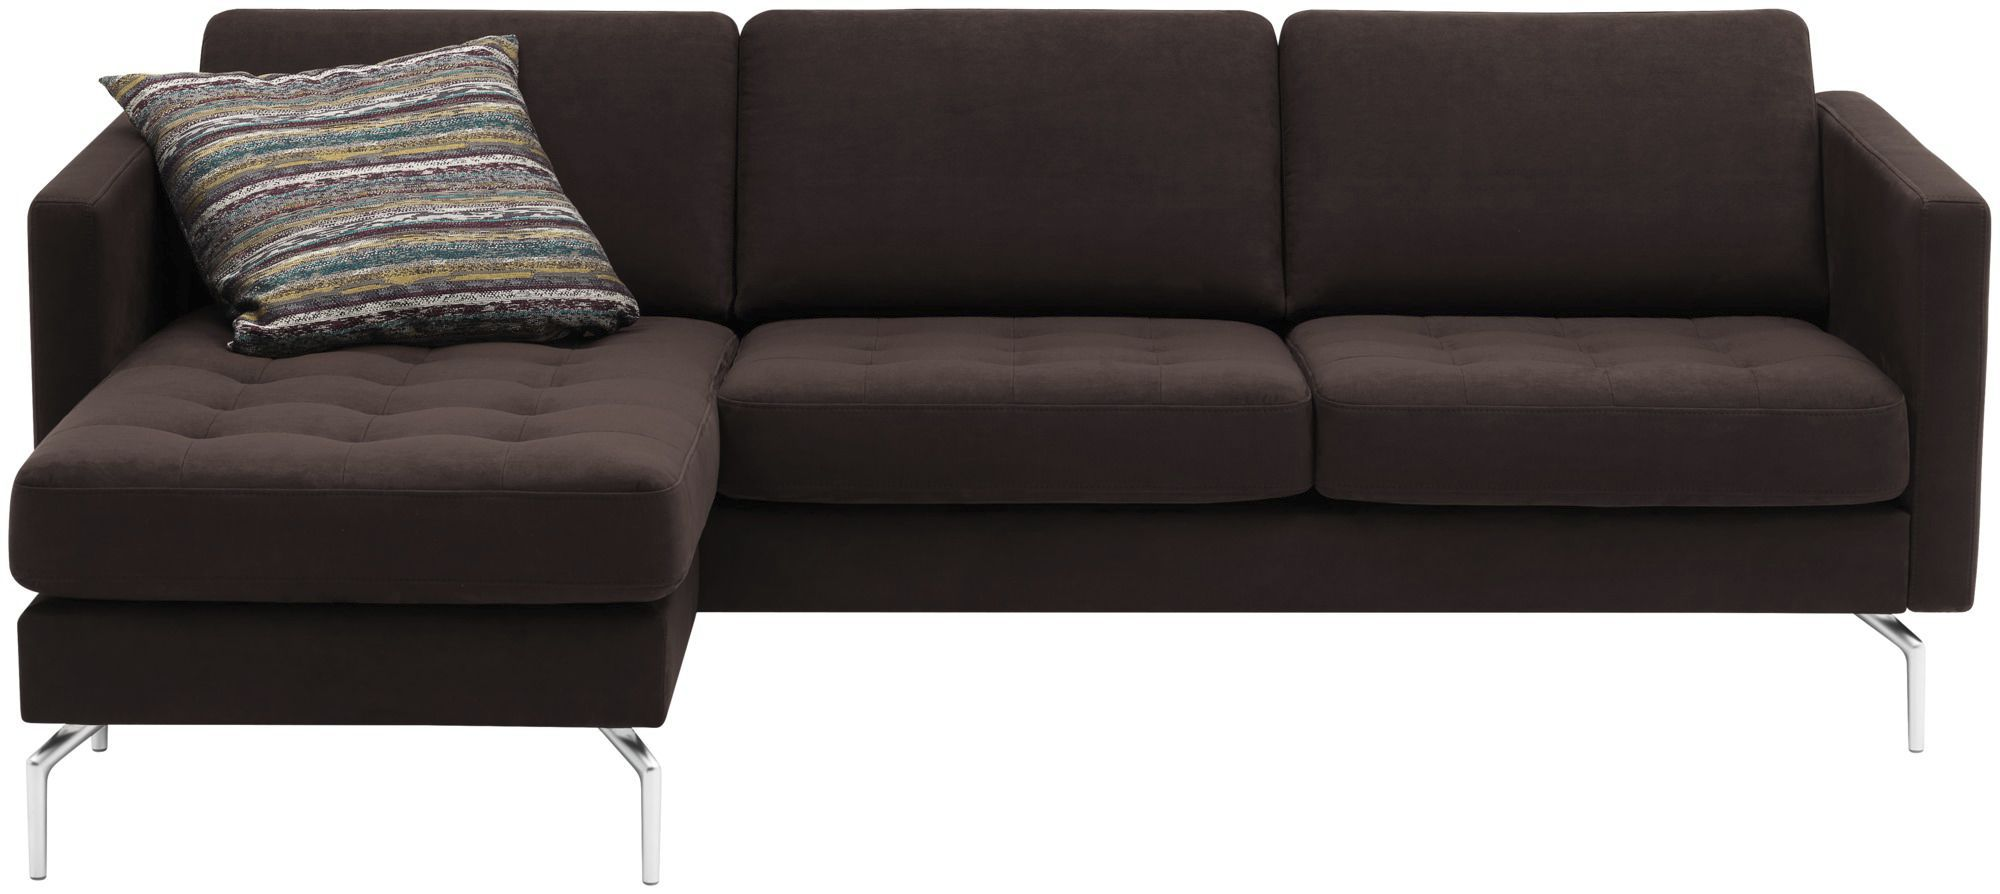 Boconcept Canape Convertible Awesome Canap Bo Concept With